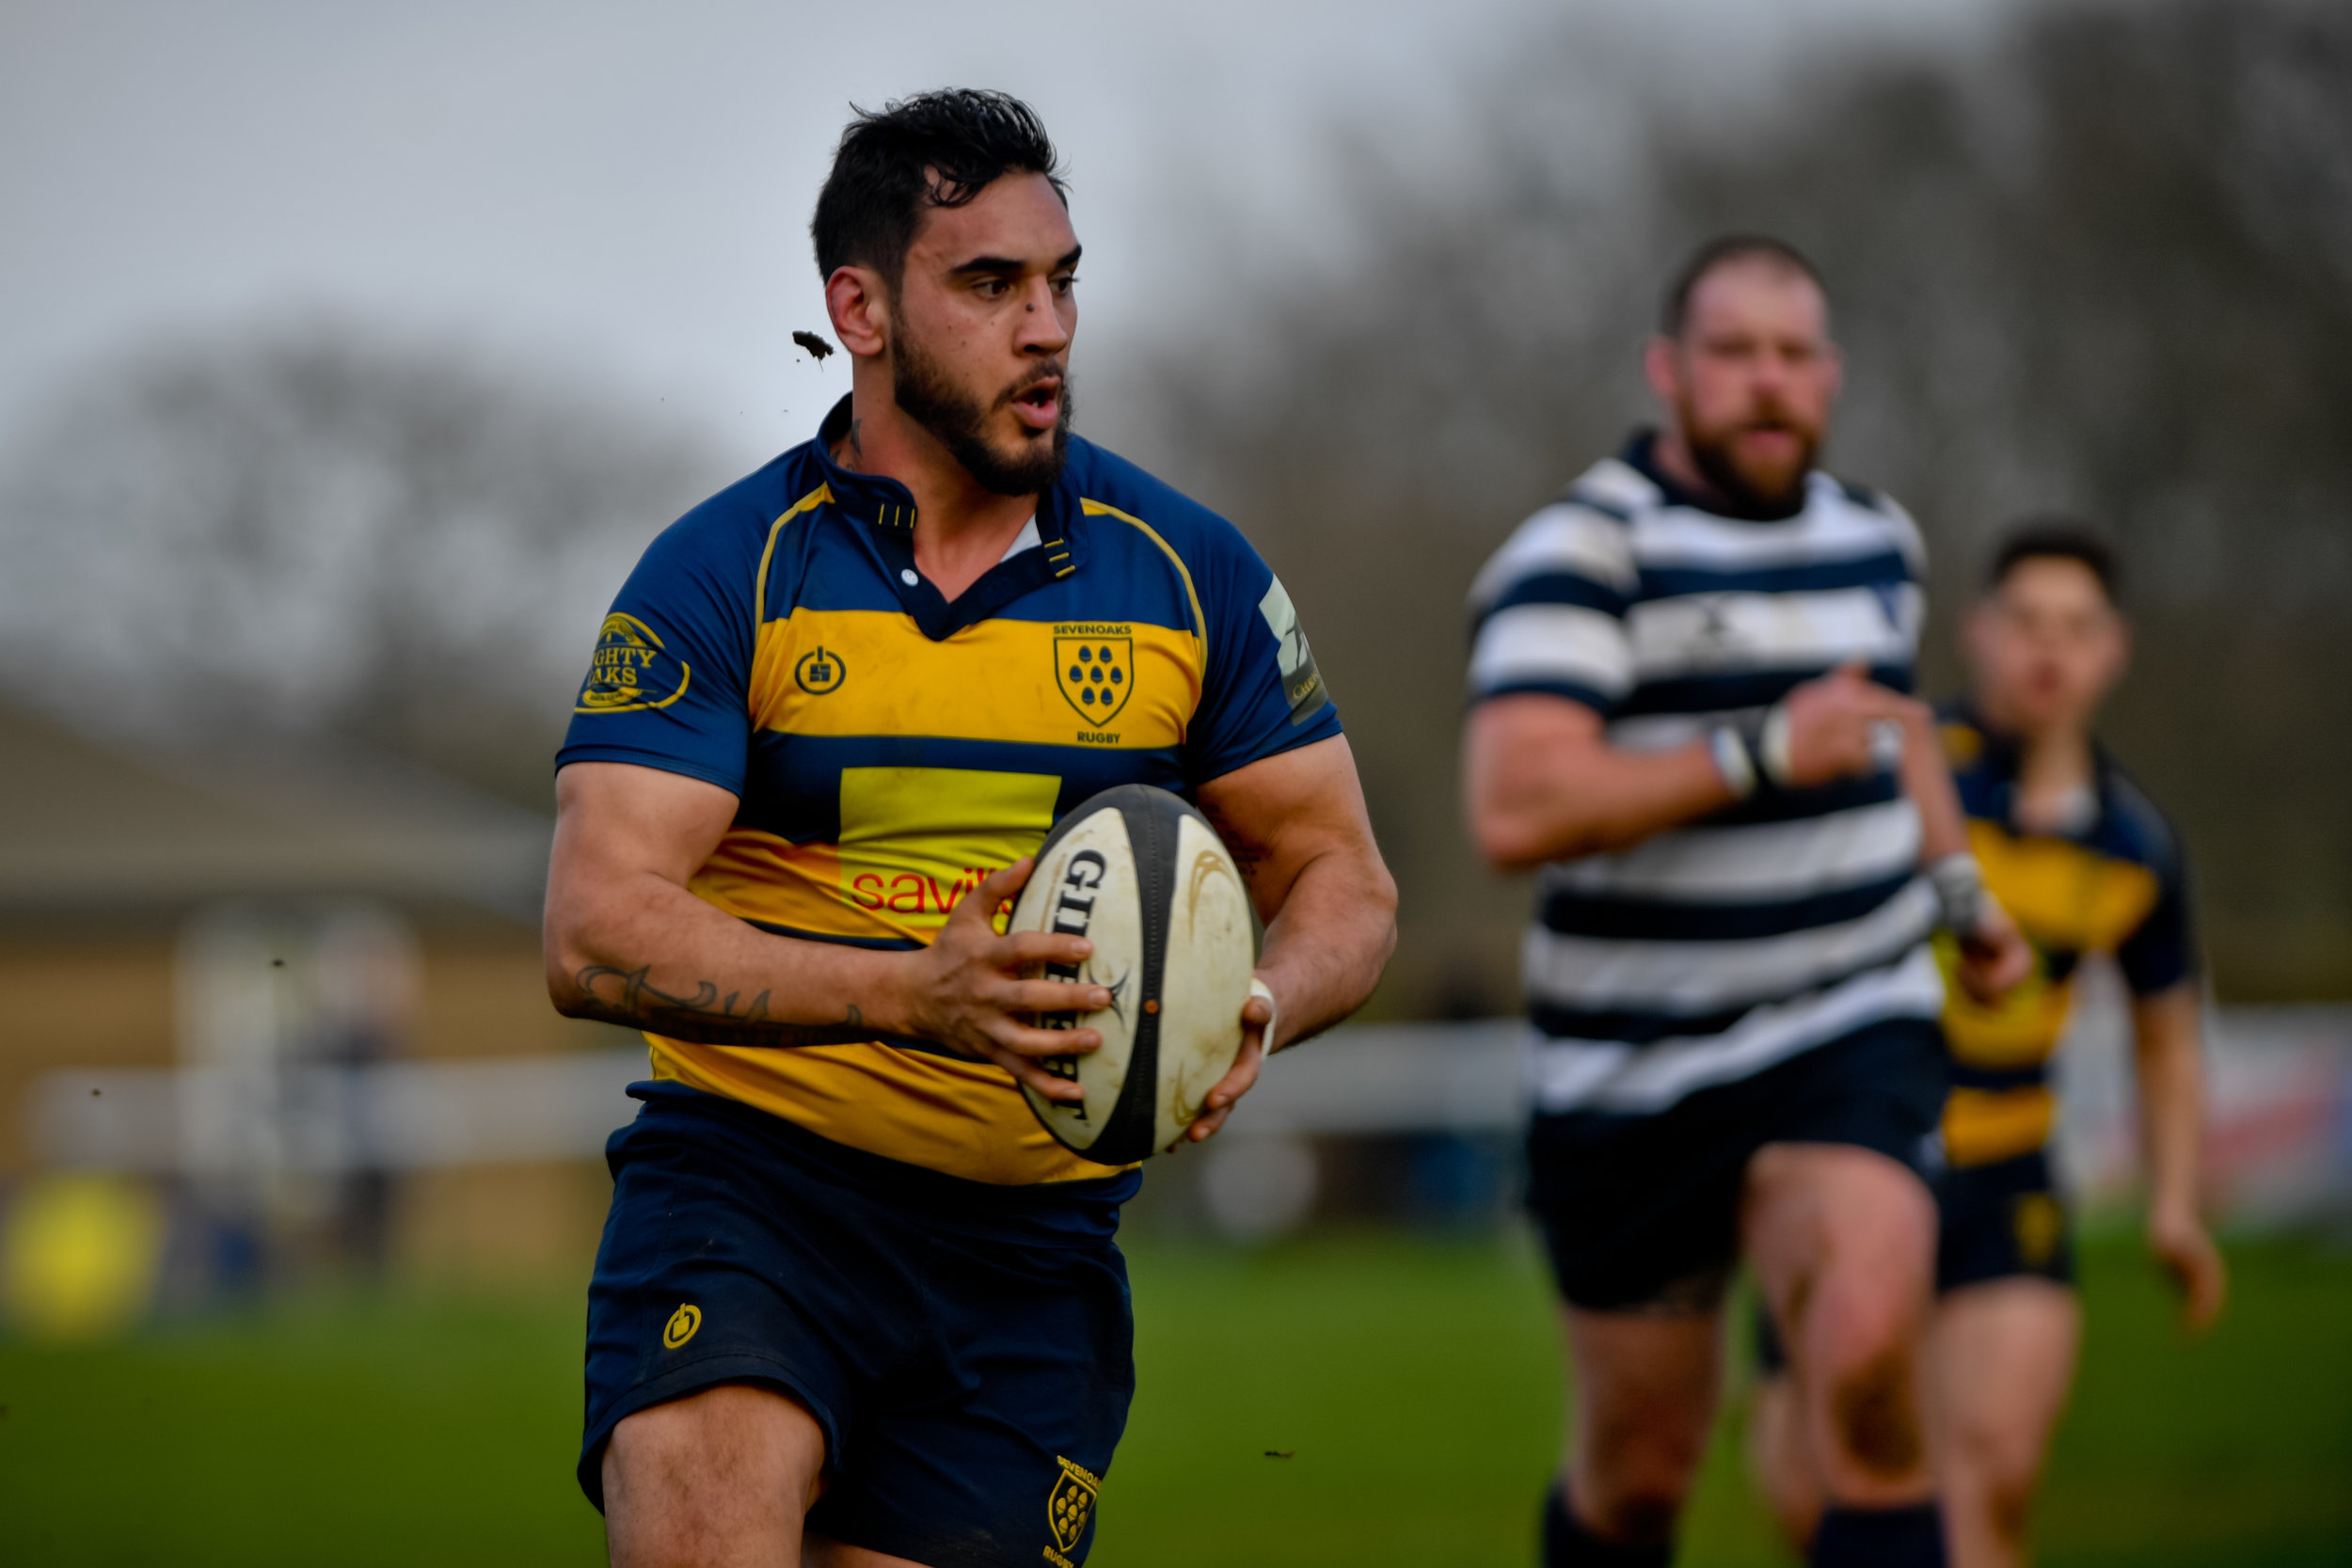 Sevenoaks RFC No.8 Alex Suttie had an outstanding game against Havant RFC. Photo Credit: David Purday